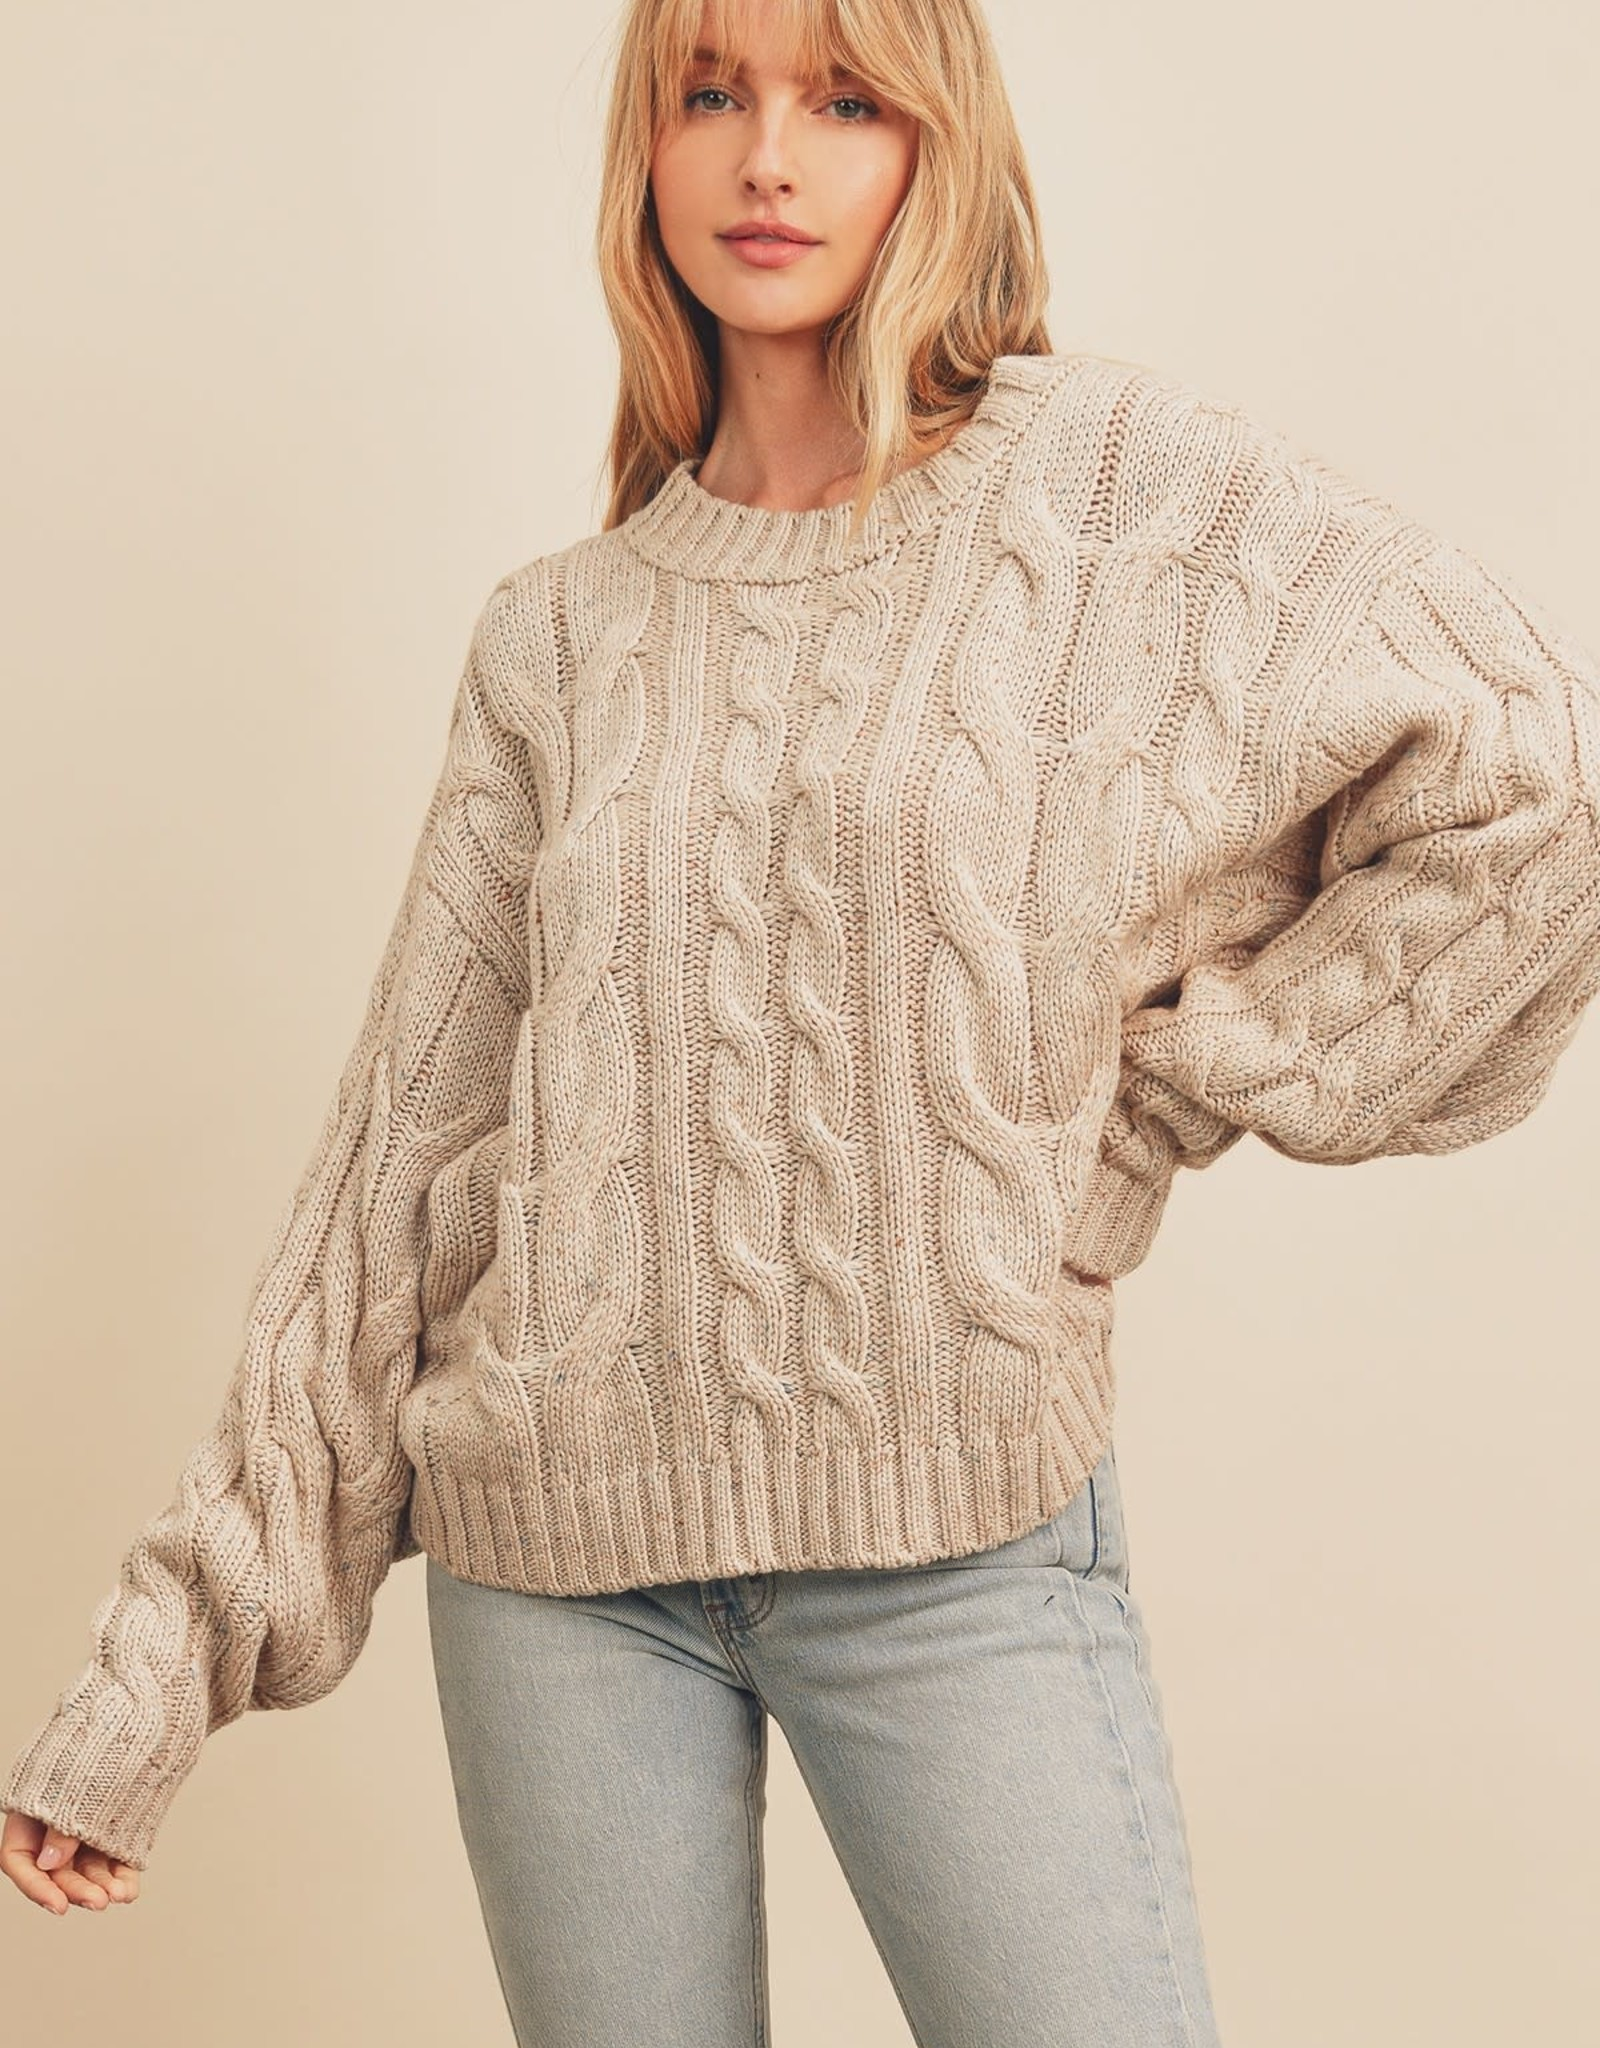 Miss Bliss Cable Knit Oversized Sweater- Oatmeal